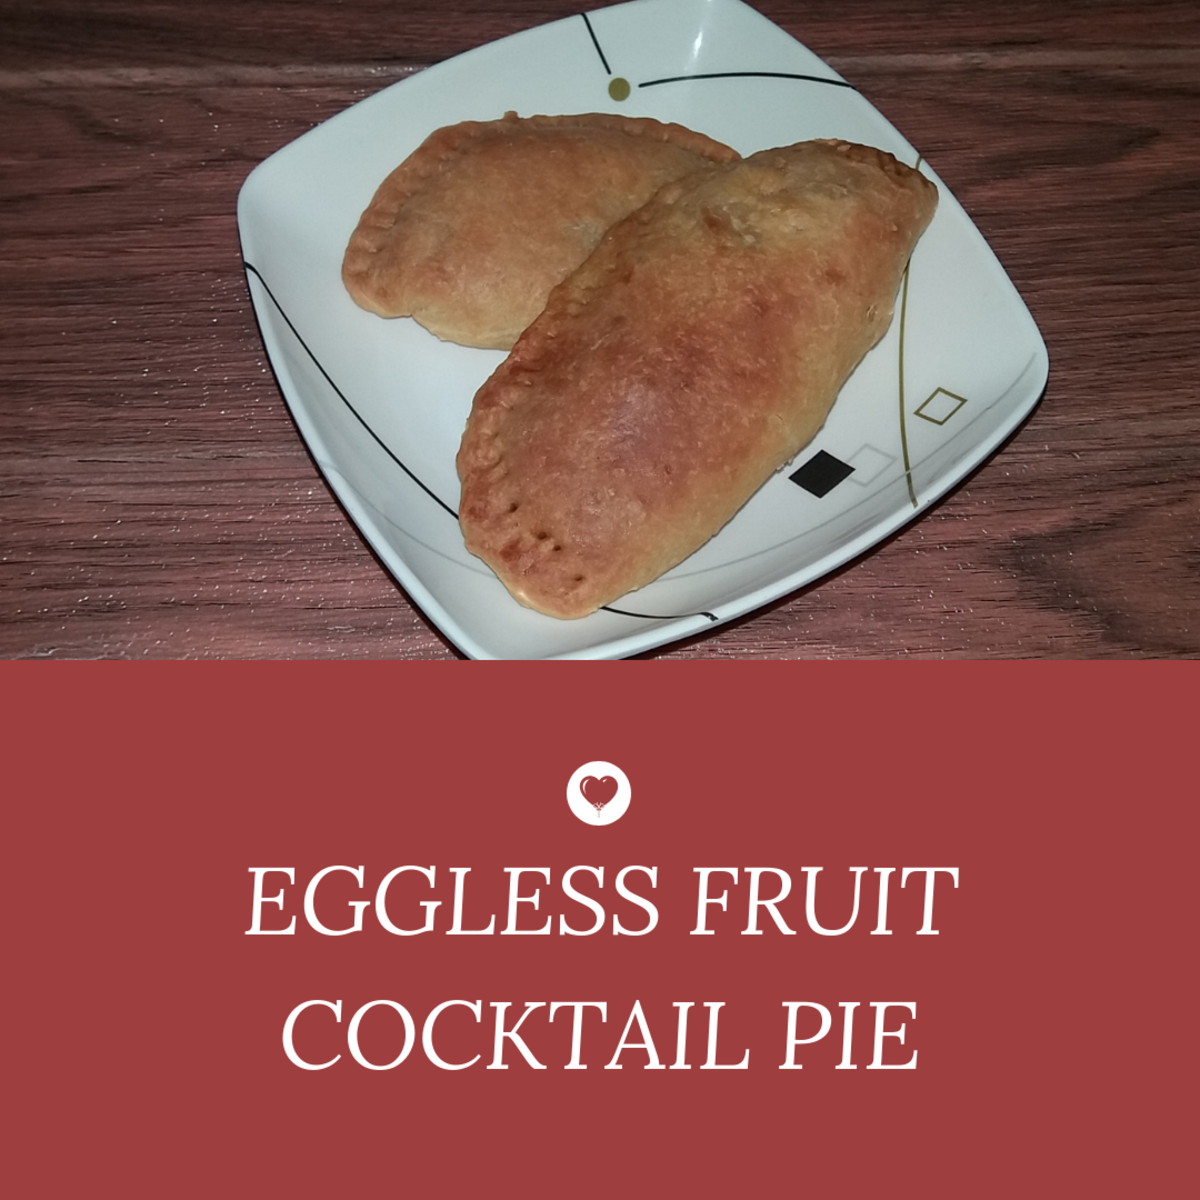 How to Make an Egg-Free Fruit Cocktail Pie